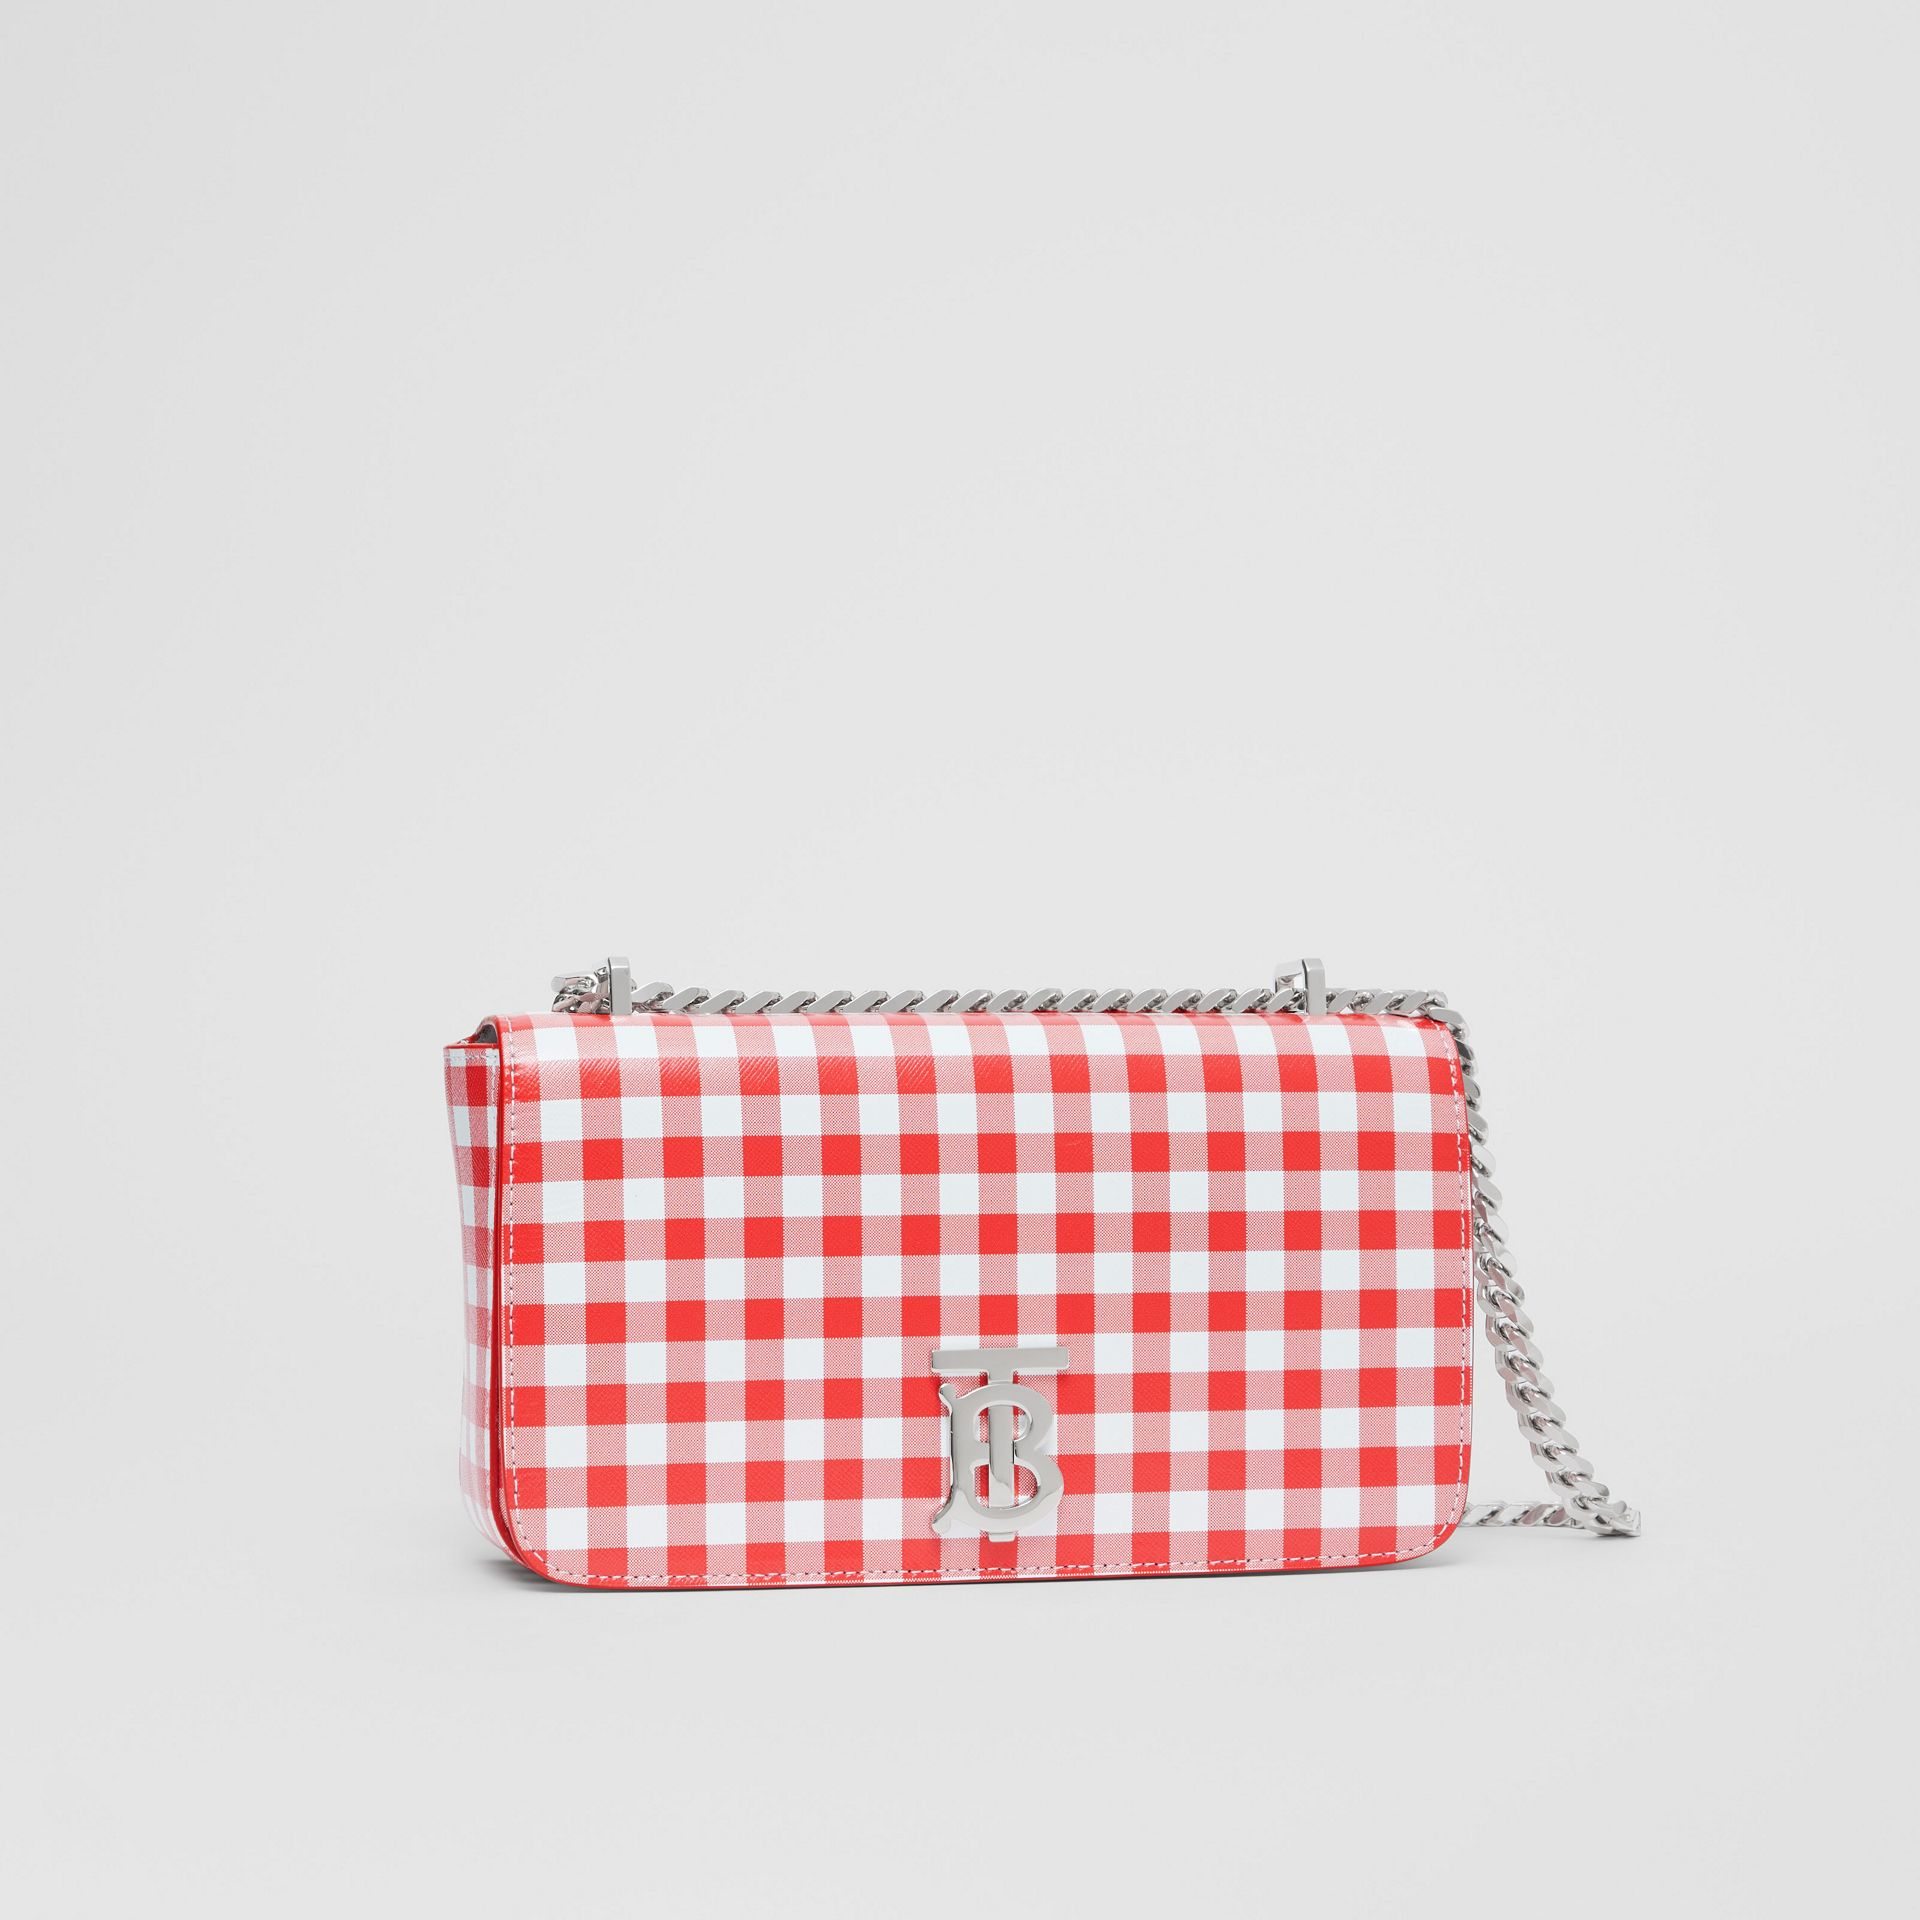 Small Gingham Leather Lola Bag in Red - Women | Burberry - gallery image 4